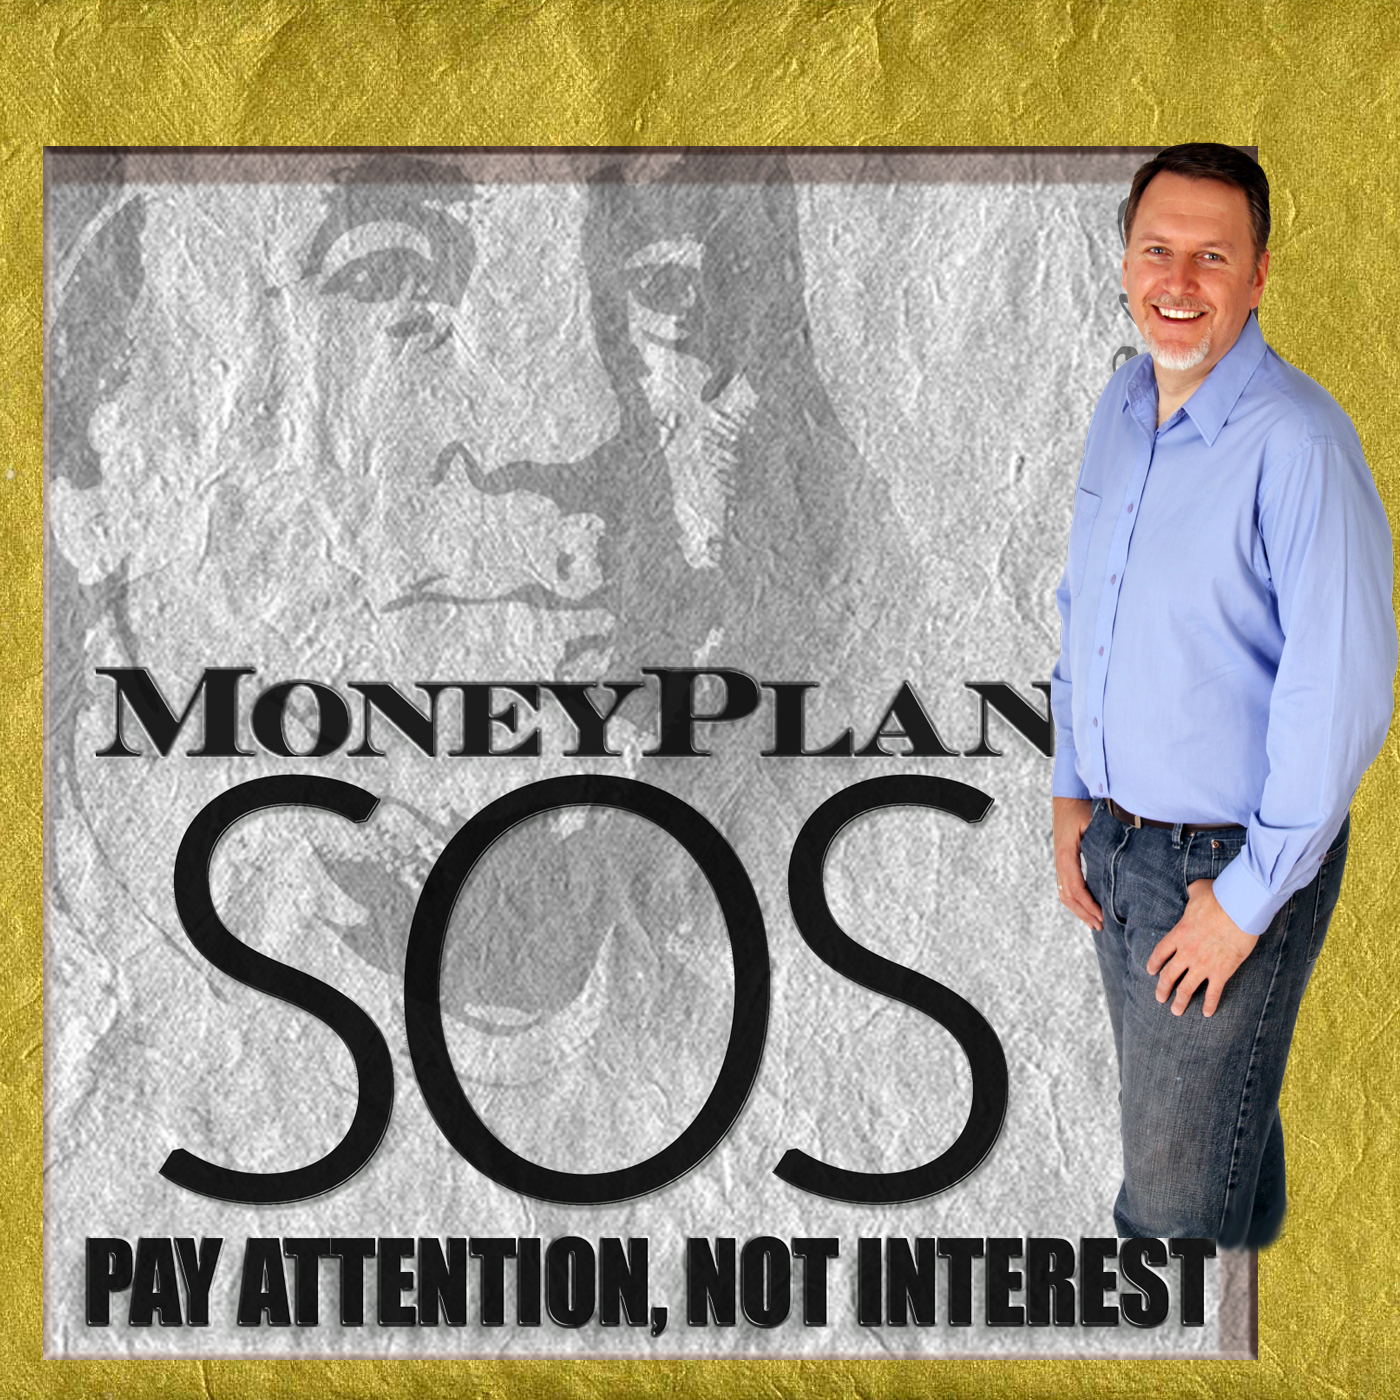 MoneyPlan SOS - Pay Attention, Not Interest